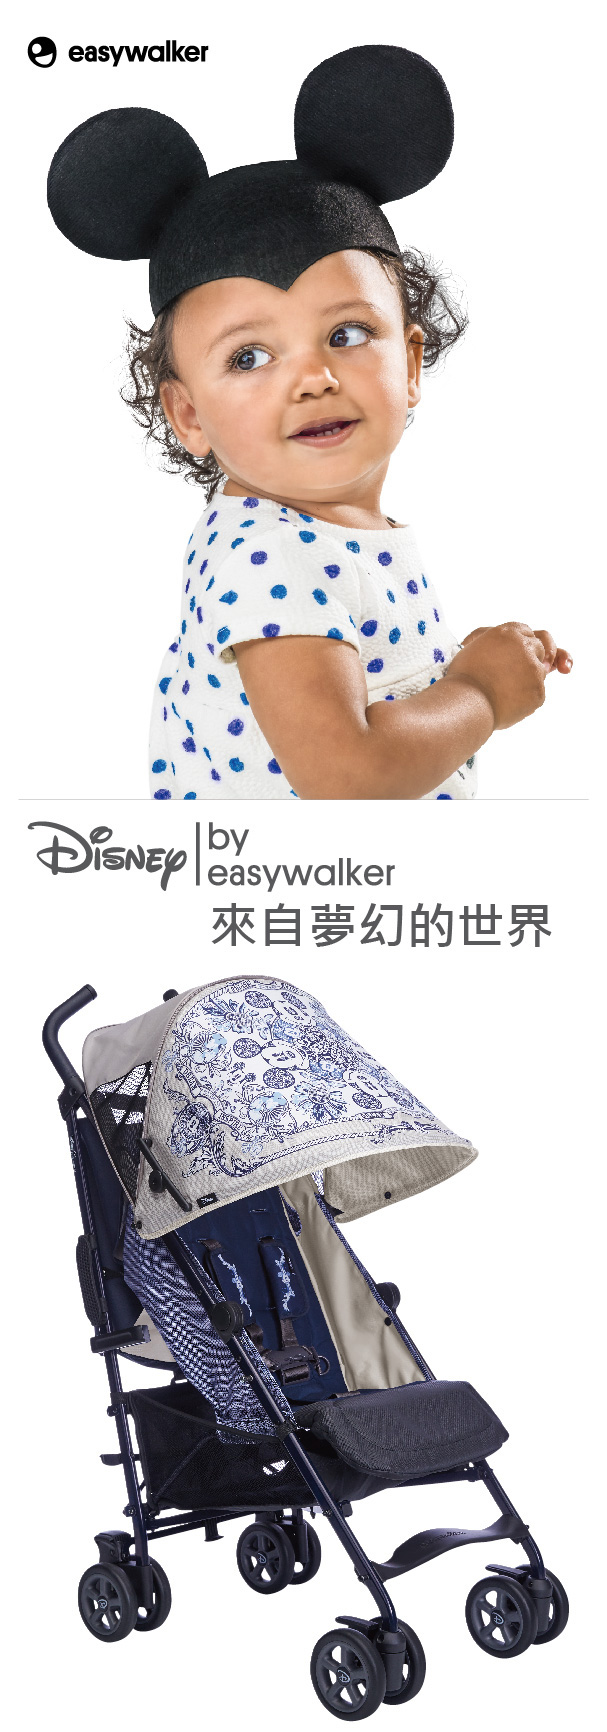 easywalker-mini-buggy-disney-info01